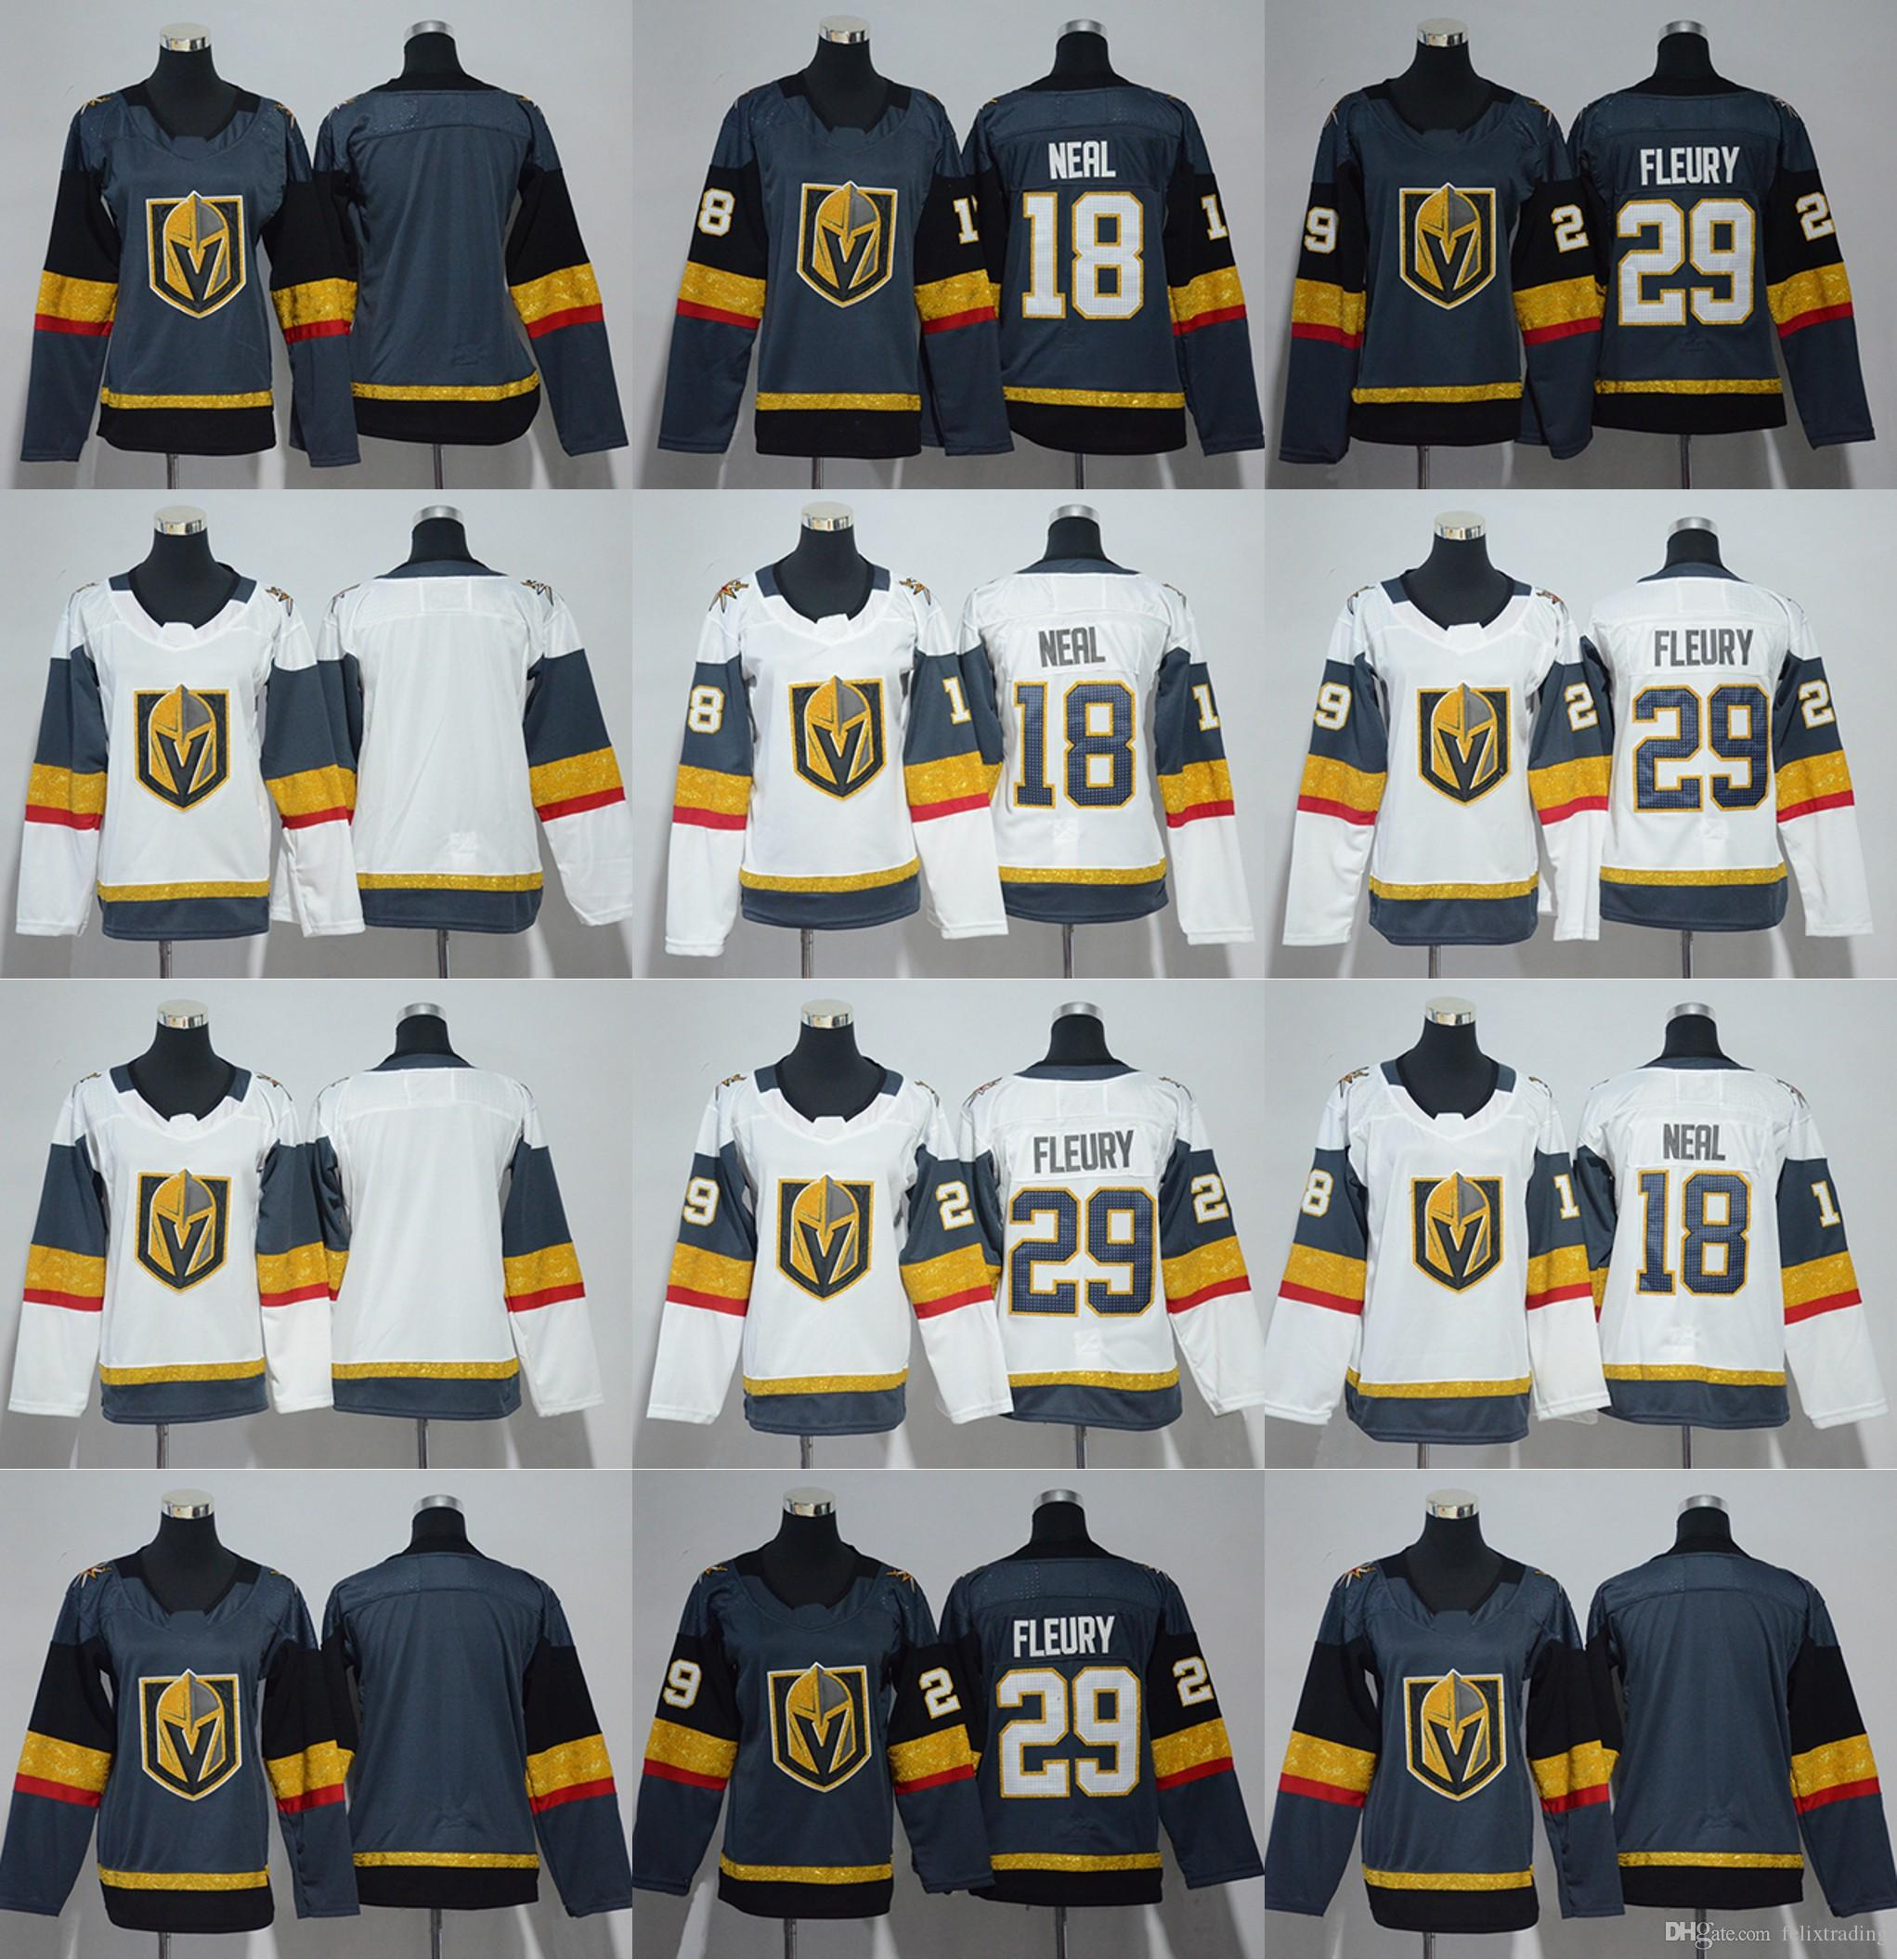 low priced 09cde 71949 Women Youth 18 James Neal Jersey 29 Marc-Andre Fleury 2017-2018 Season  Vegas Golden Knights Hockey Jerseys Kids Lady Stitched Jersey